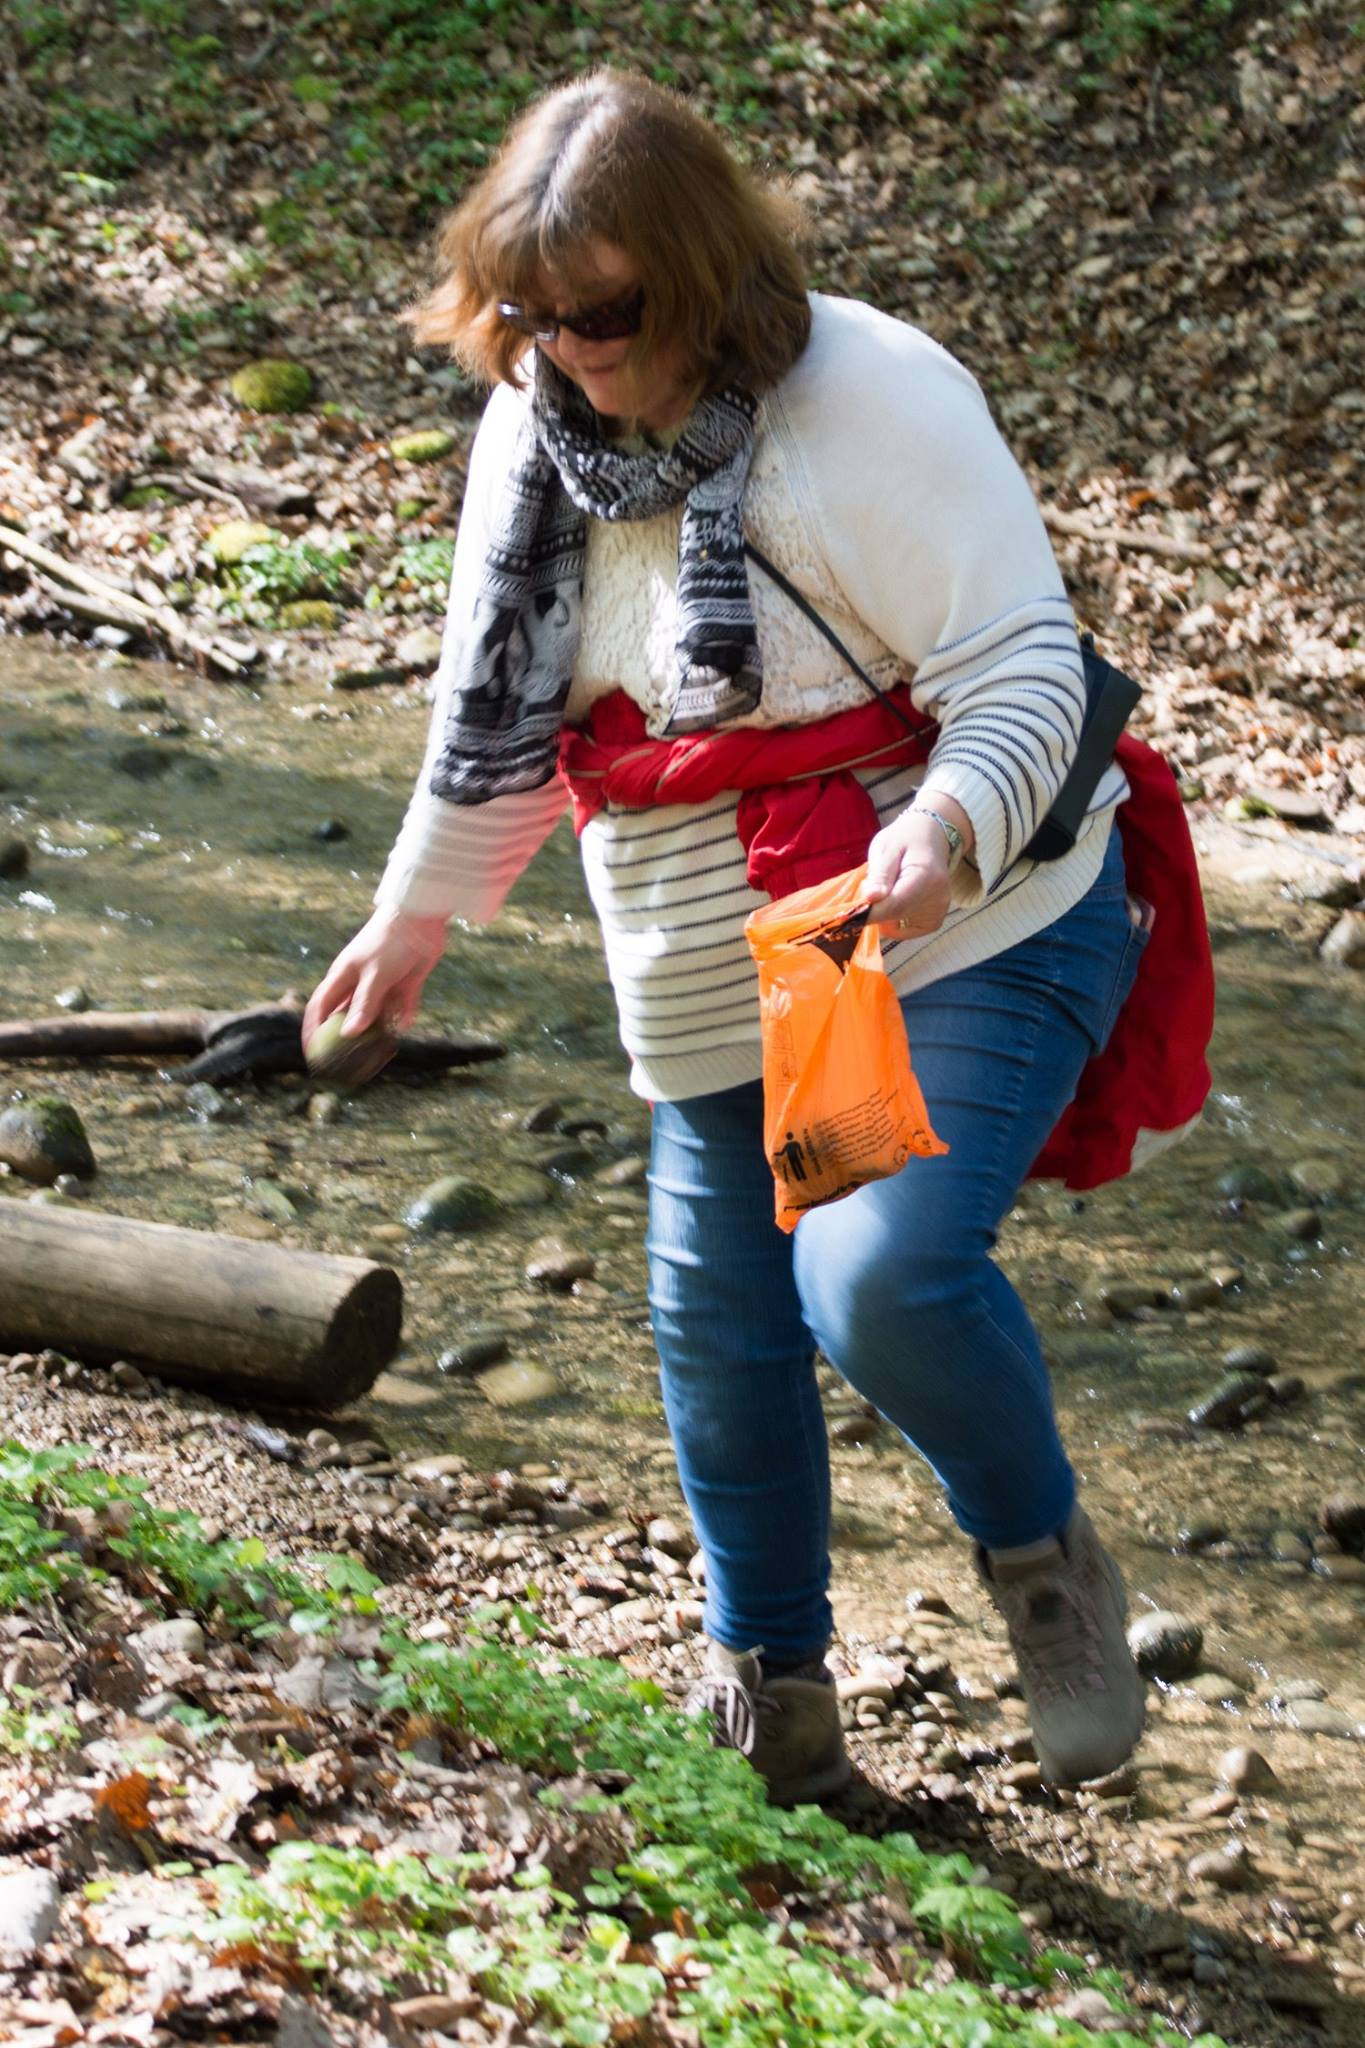 Collecting-pebbles-on-the-Wednesday-walk-in-Allschwilerwald-in-April